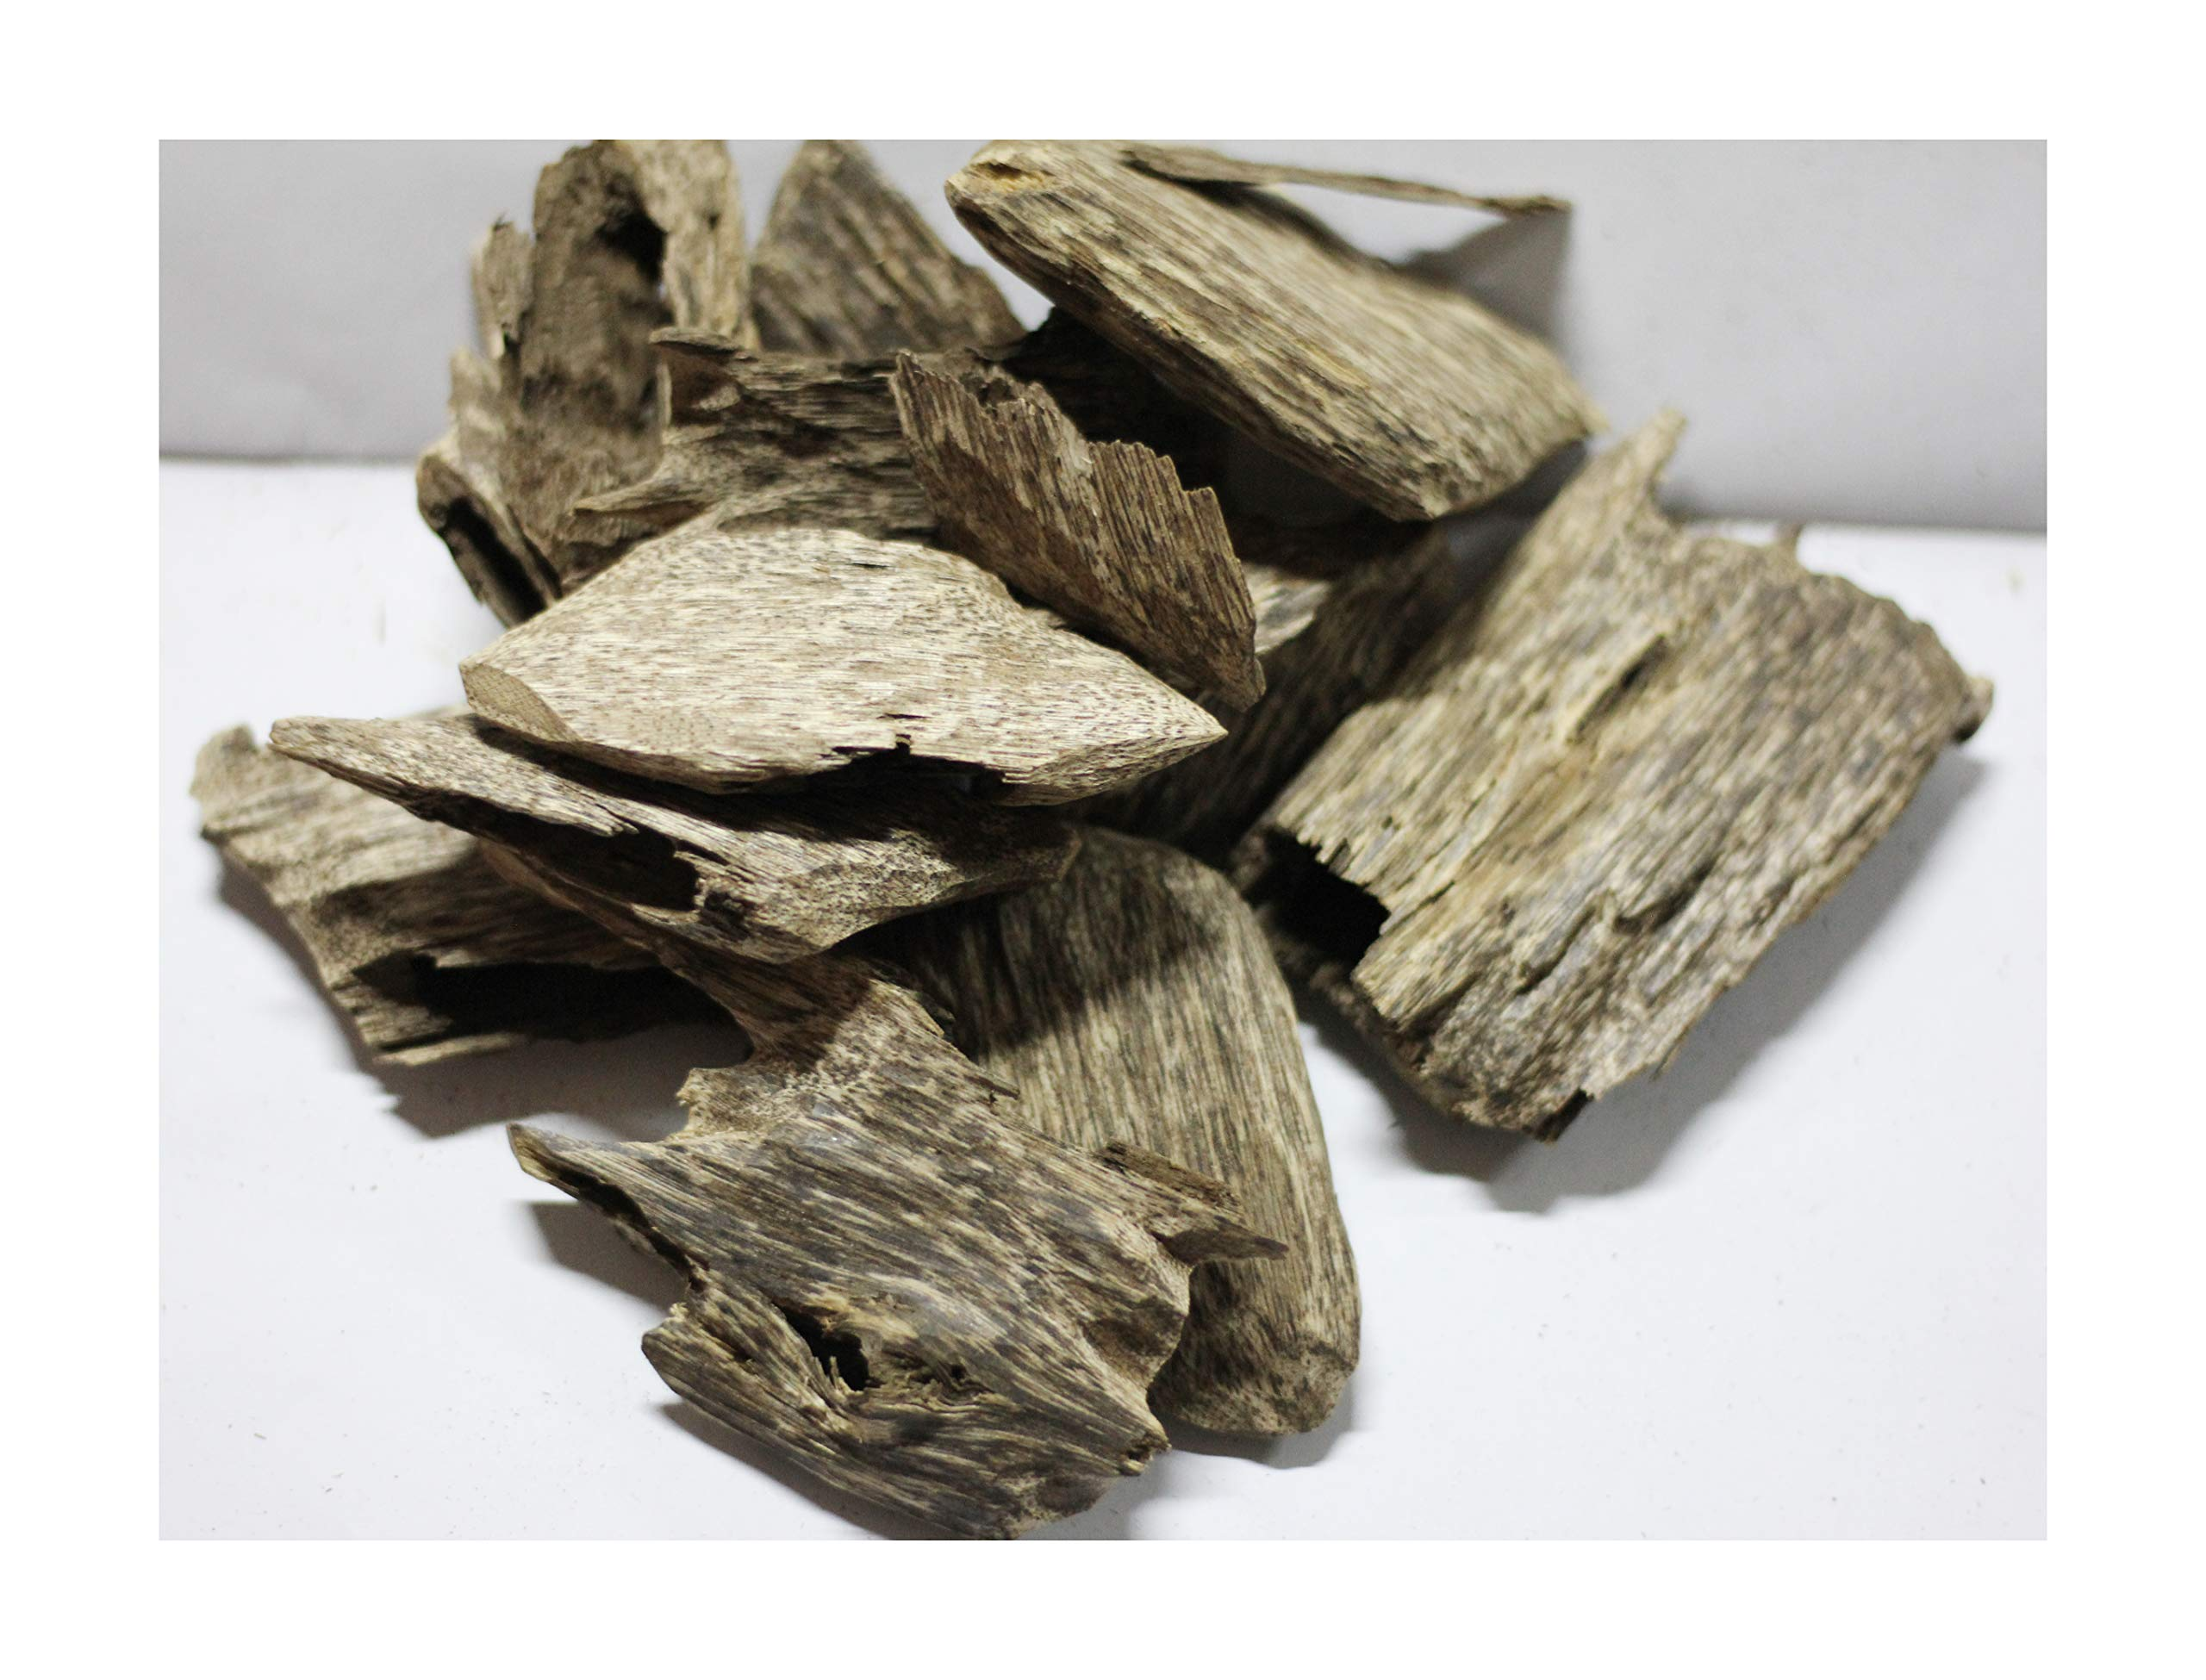 200 gram VIETNAM AGARWOOD CHIP- STEAM YOUR HOUSE-GRADE A by Agarwood-Incense (Image #1)